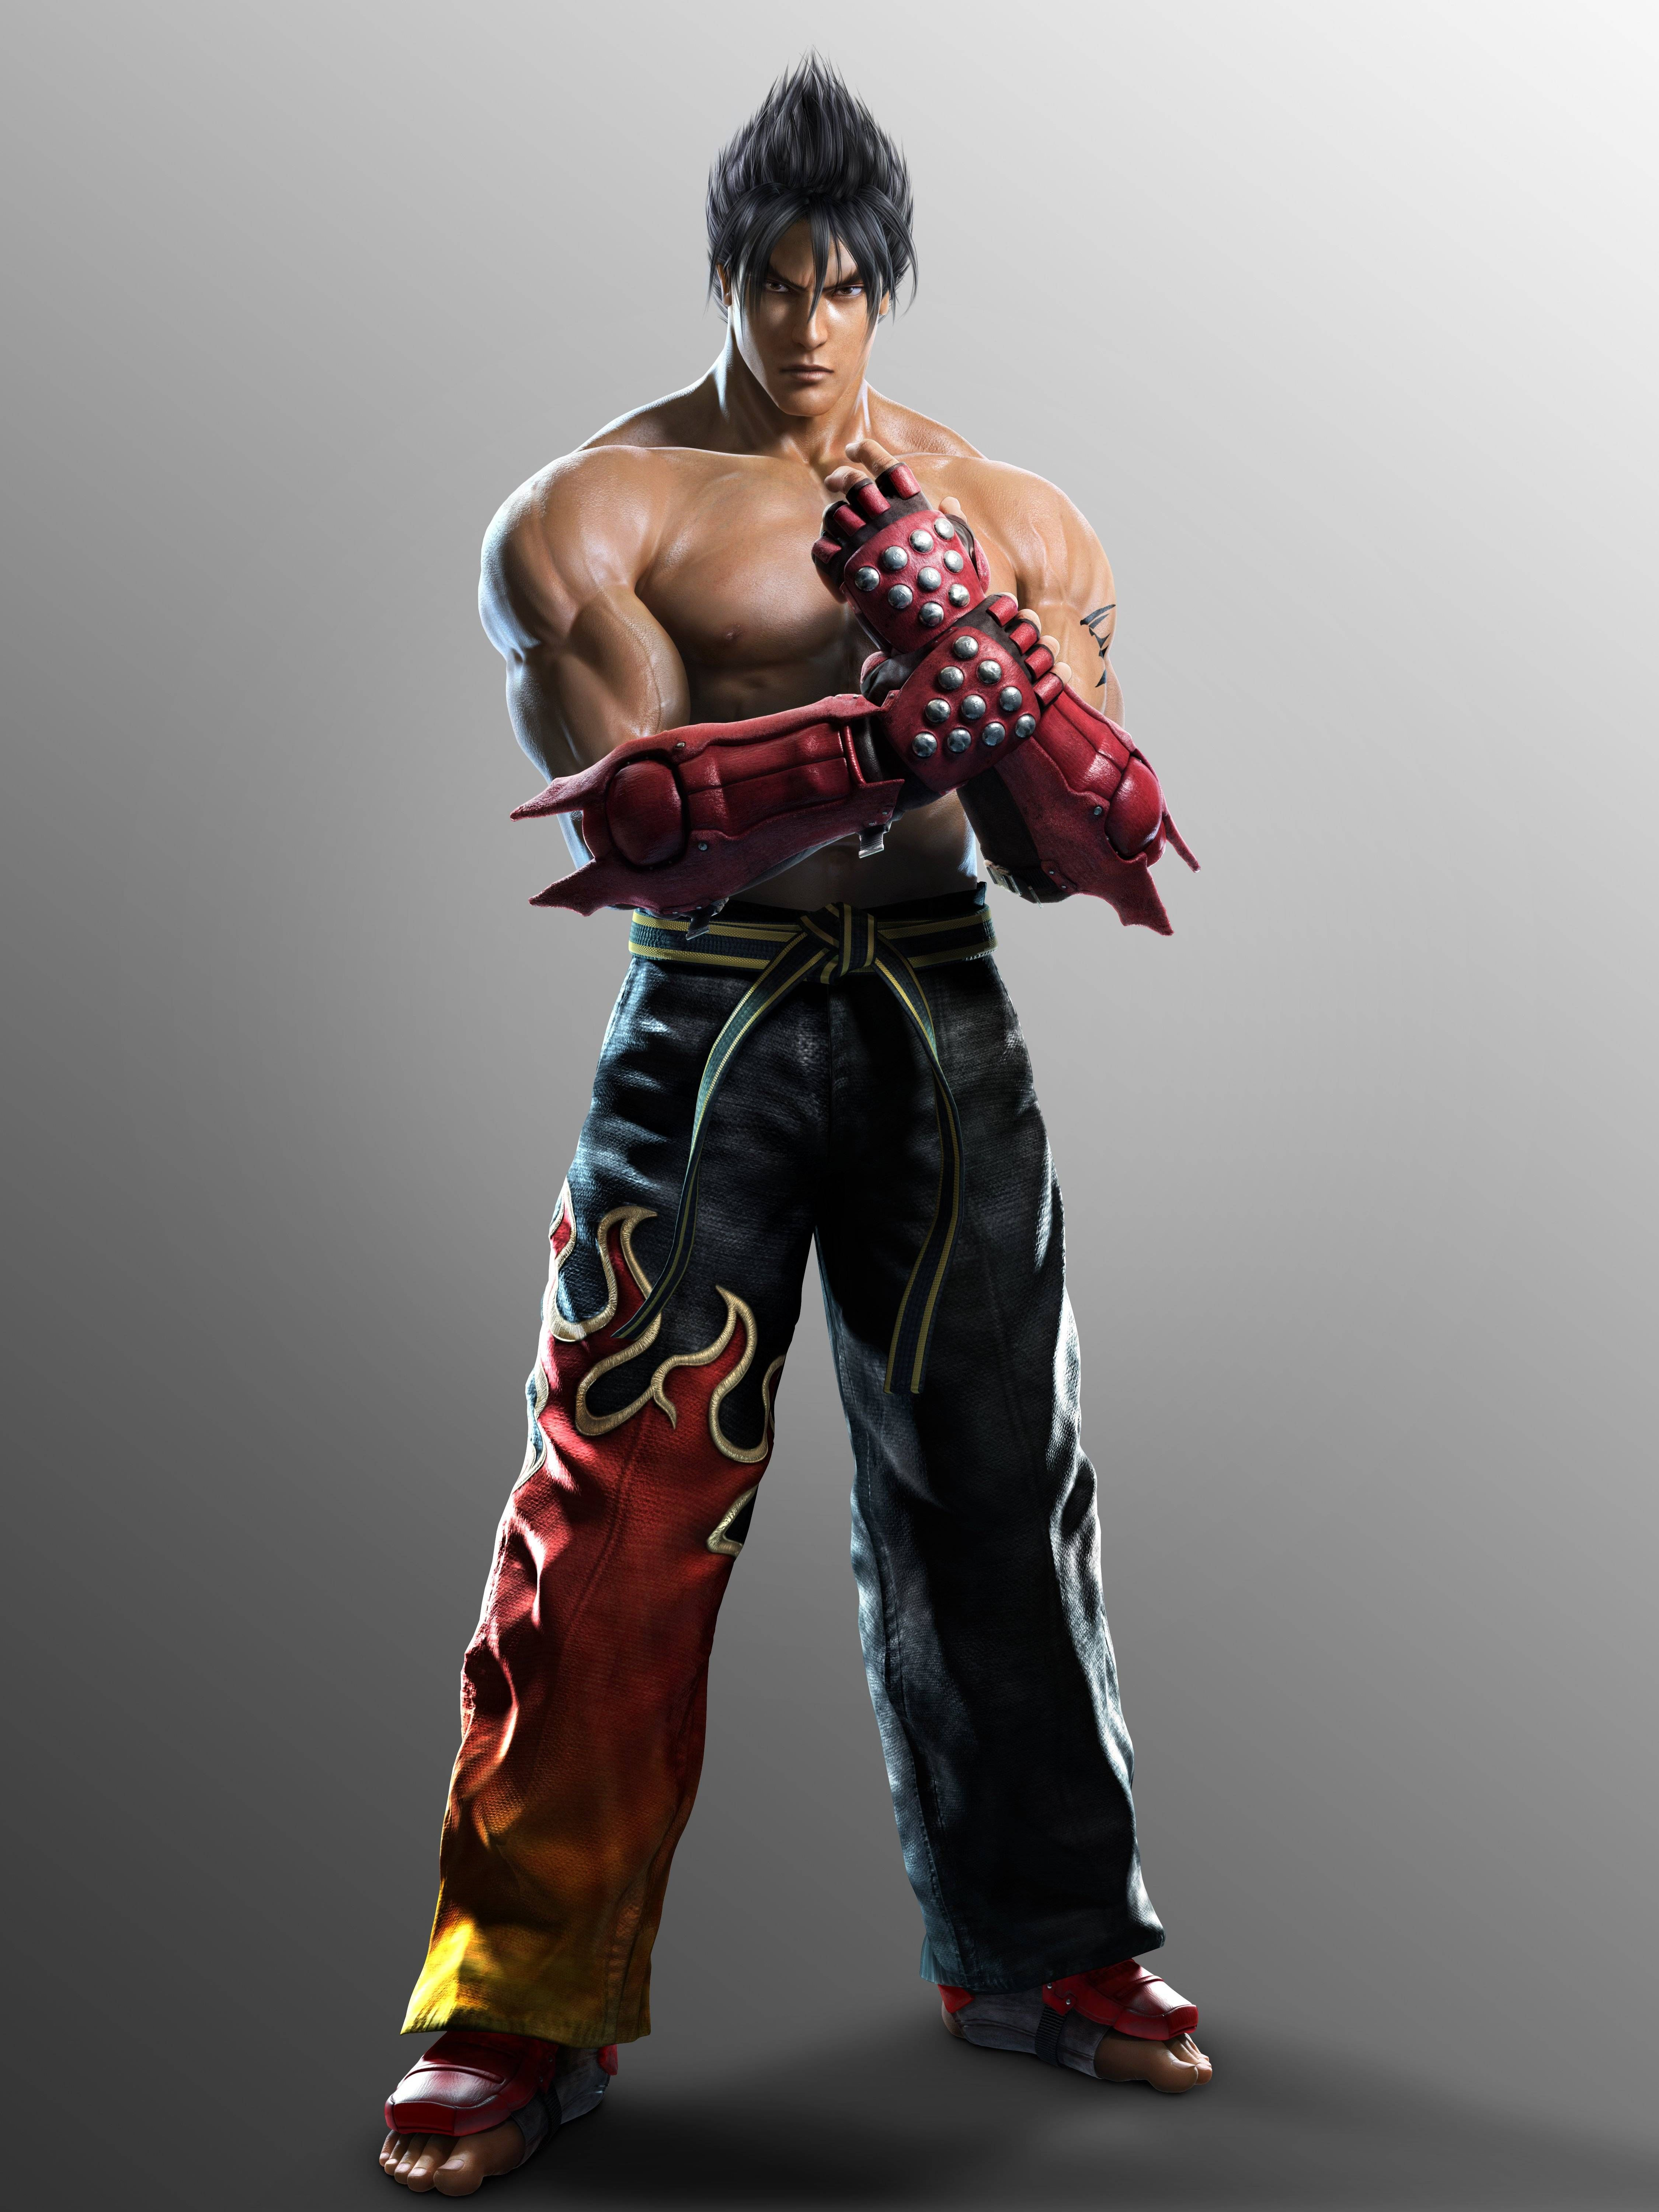 tekken characters - google search he is very muscular and is wearing